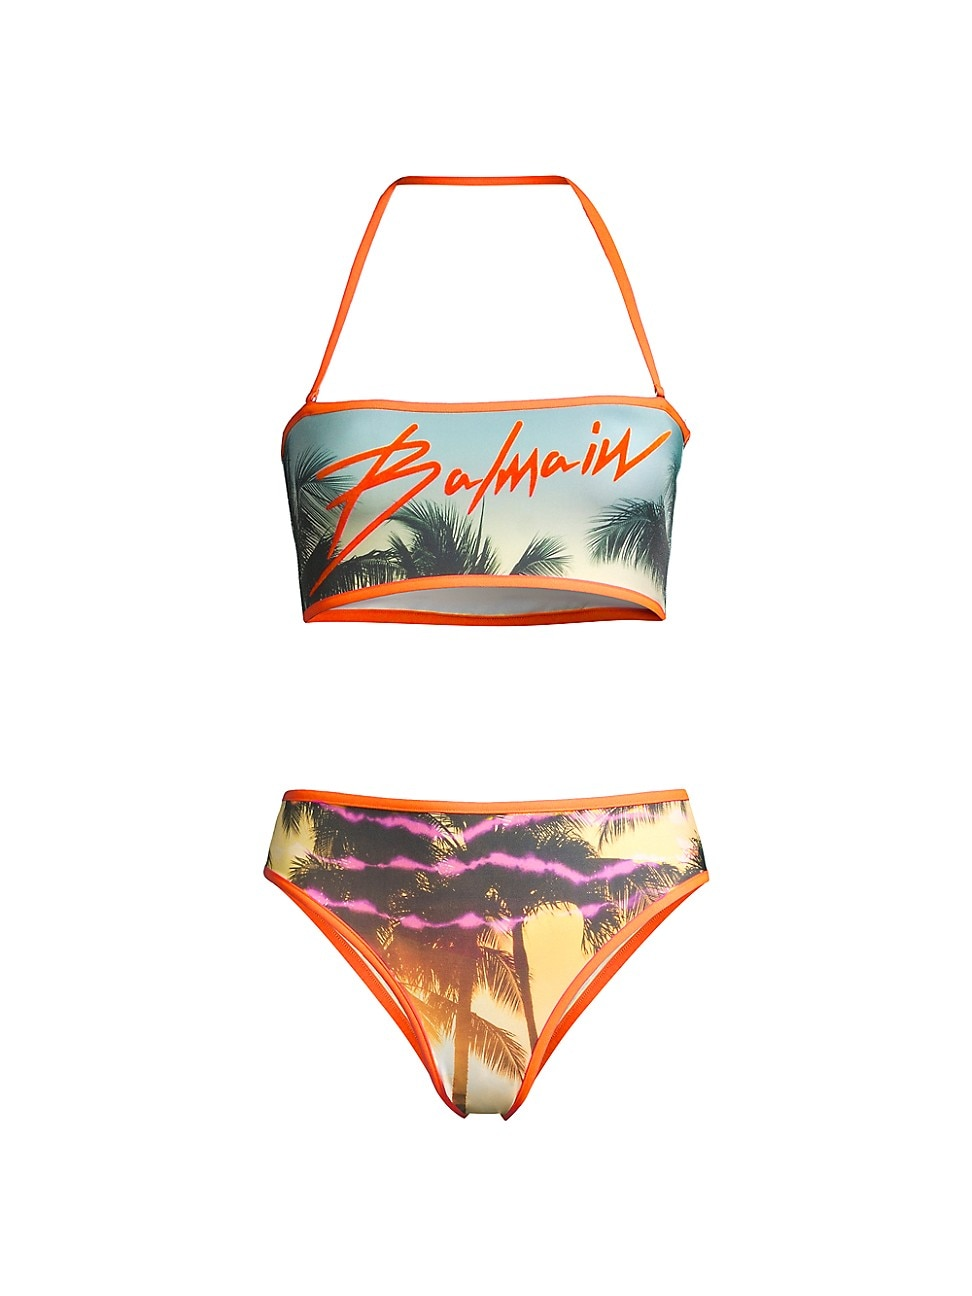 Balmain WOMEN'S PALM TREE 2-PIECE BANDEAU BIKINI SET